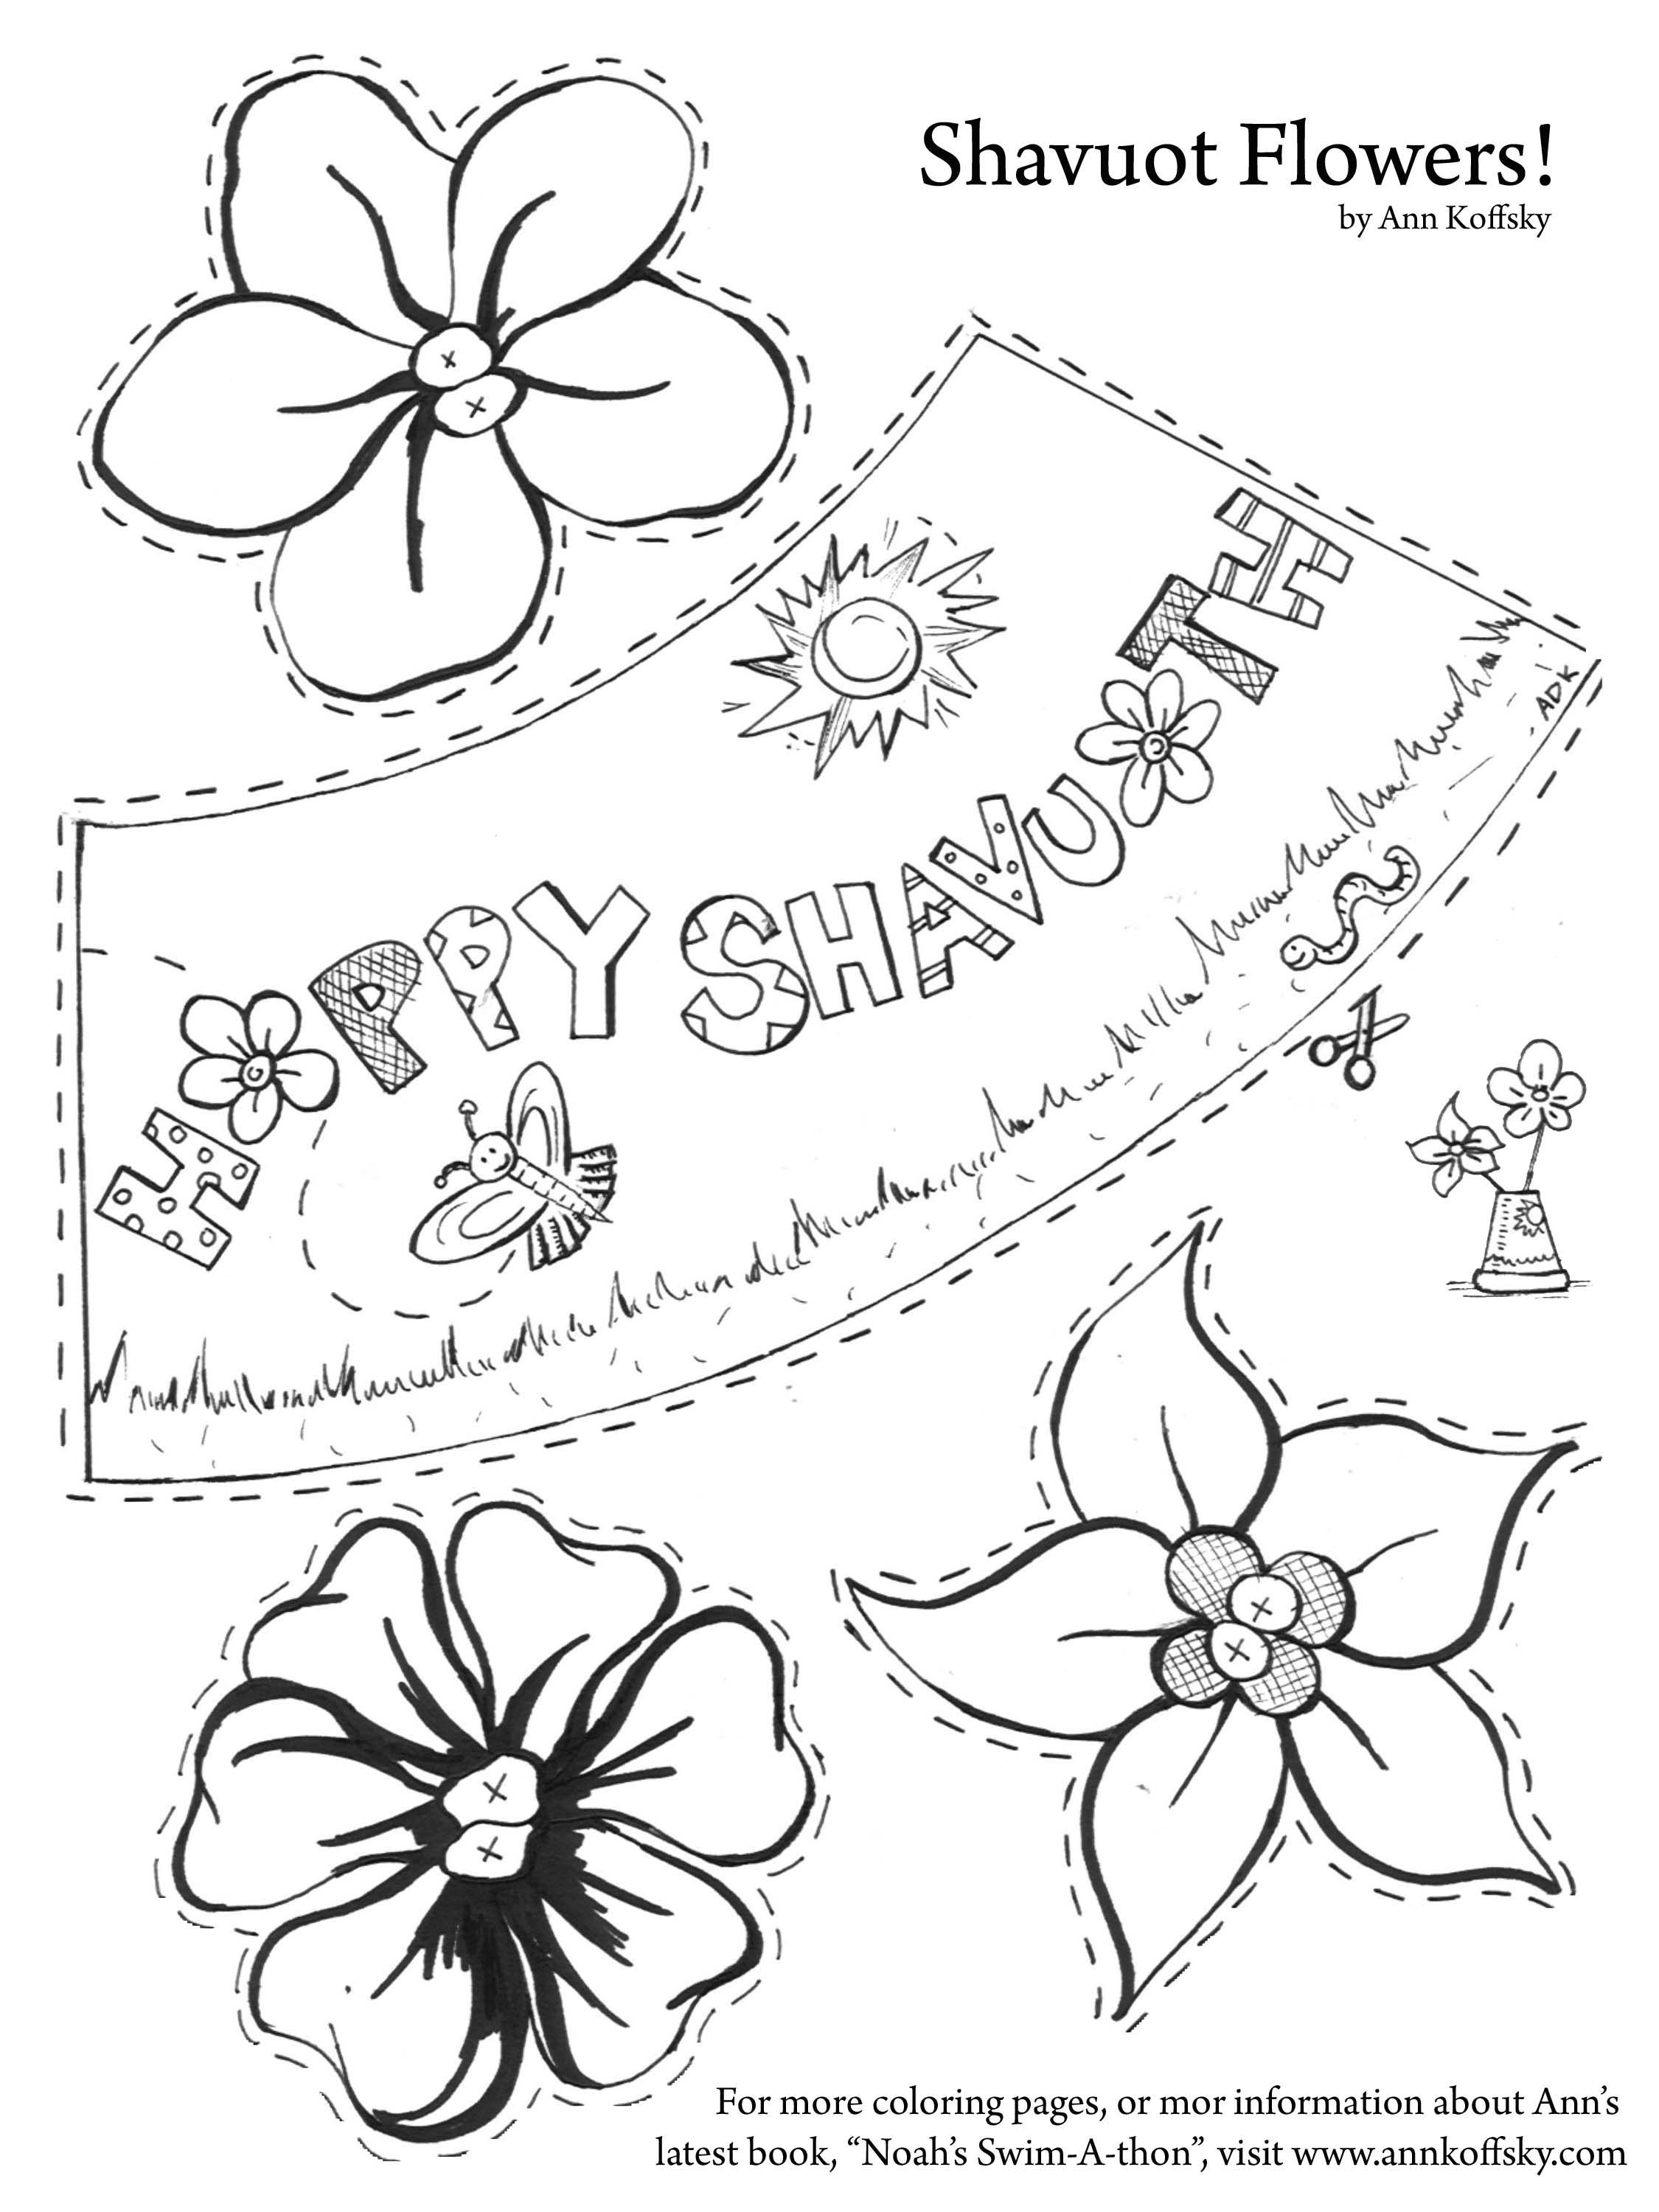 For Shavuot